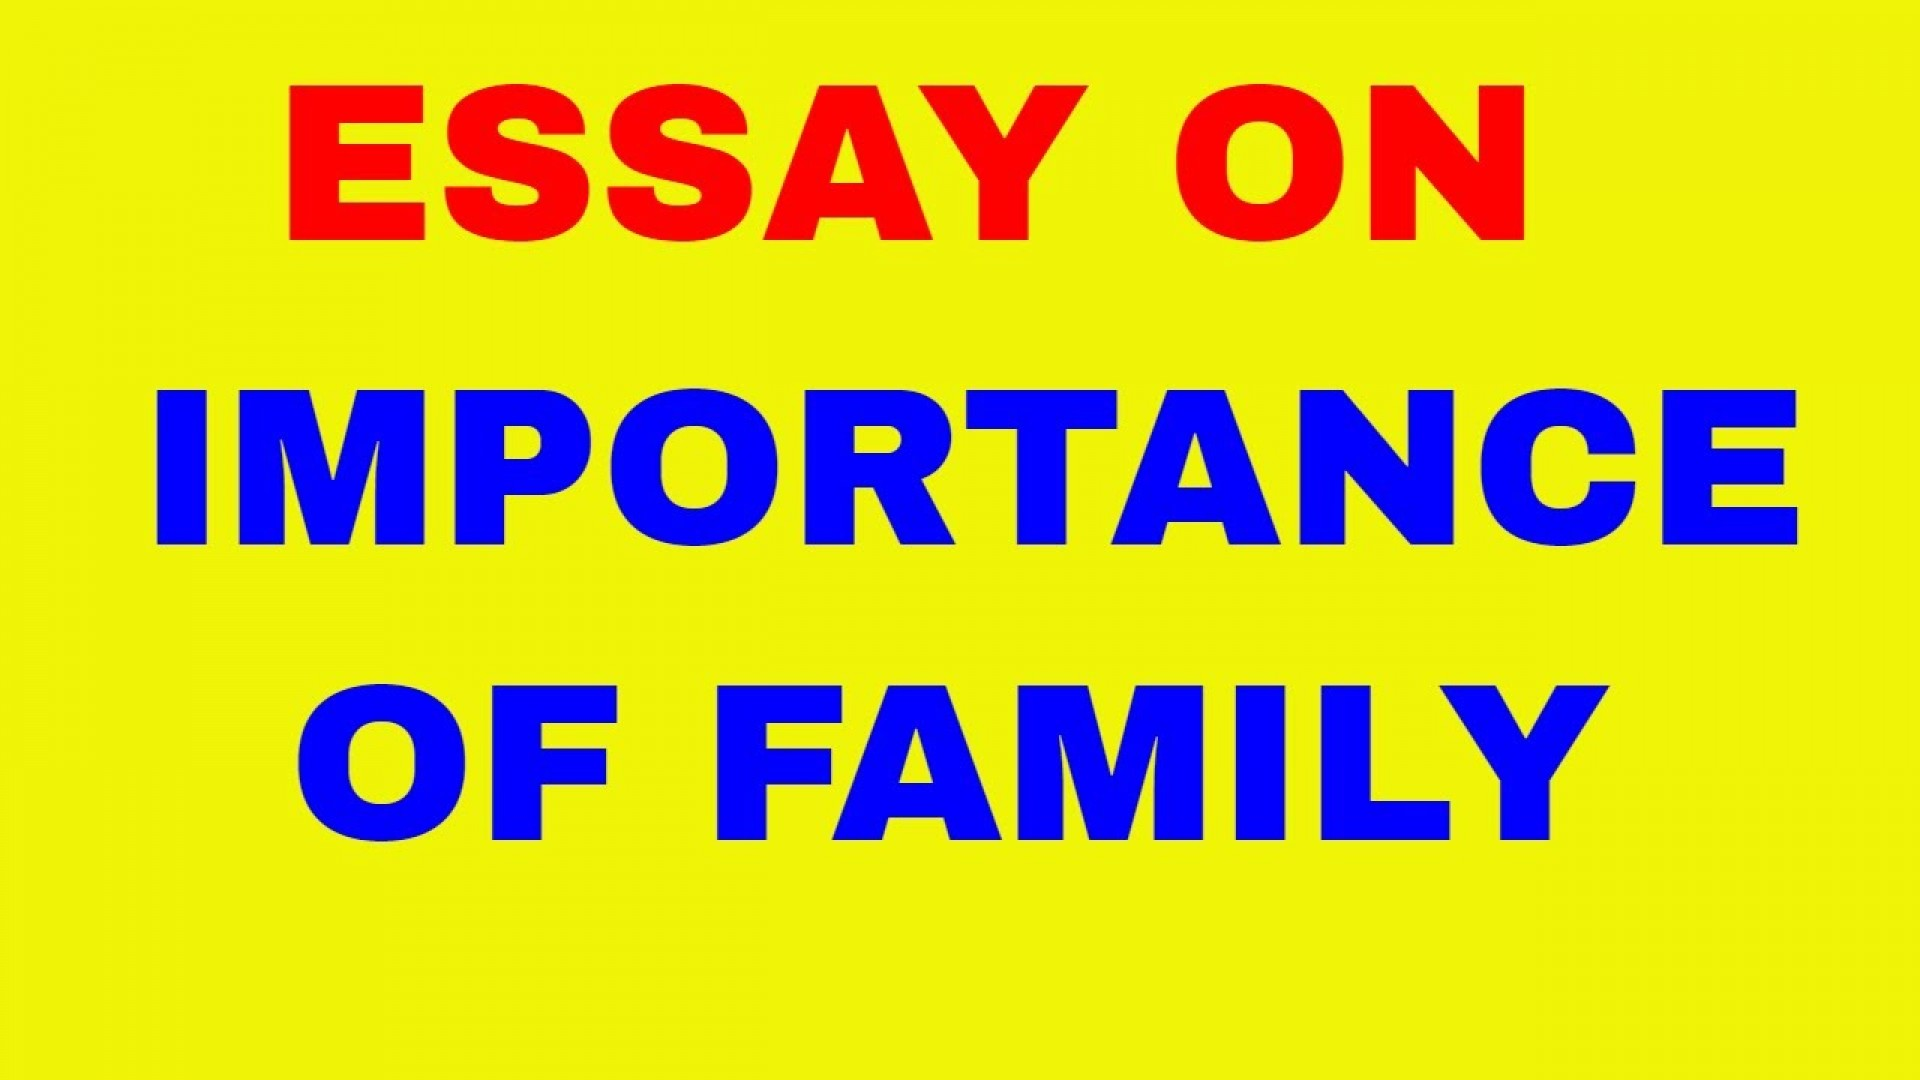 012 Importance Of Family Essay Maxresdefault Dreaded For Class 1 In Hindi Outline 1920